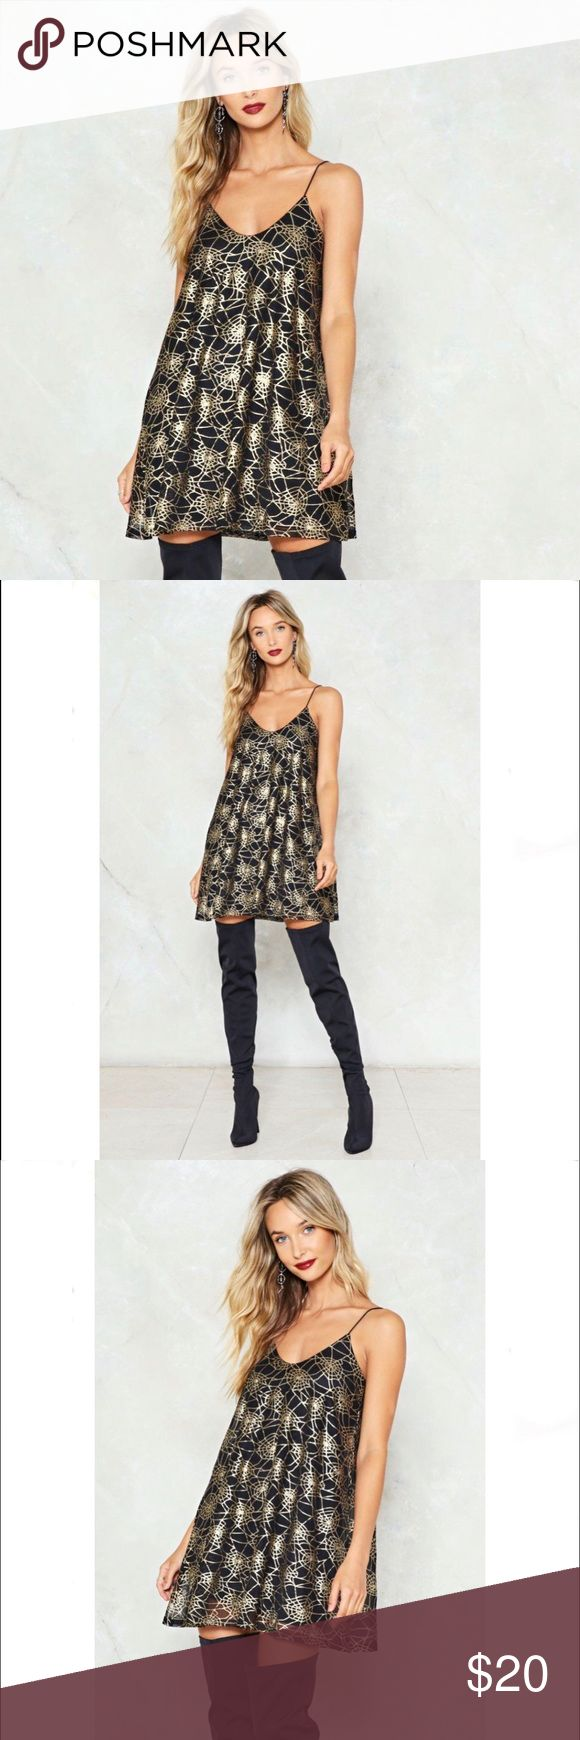 """Spin Out Cobweb Dress A brand Nasty Gal dress still sealed in its plastic bag. """"Fabric 95% Polyester, 5% Elastane. Machine Wash. Model wears US size 6, UK size 10."""" Nasty Gal Dresses Mini"""